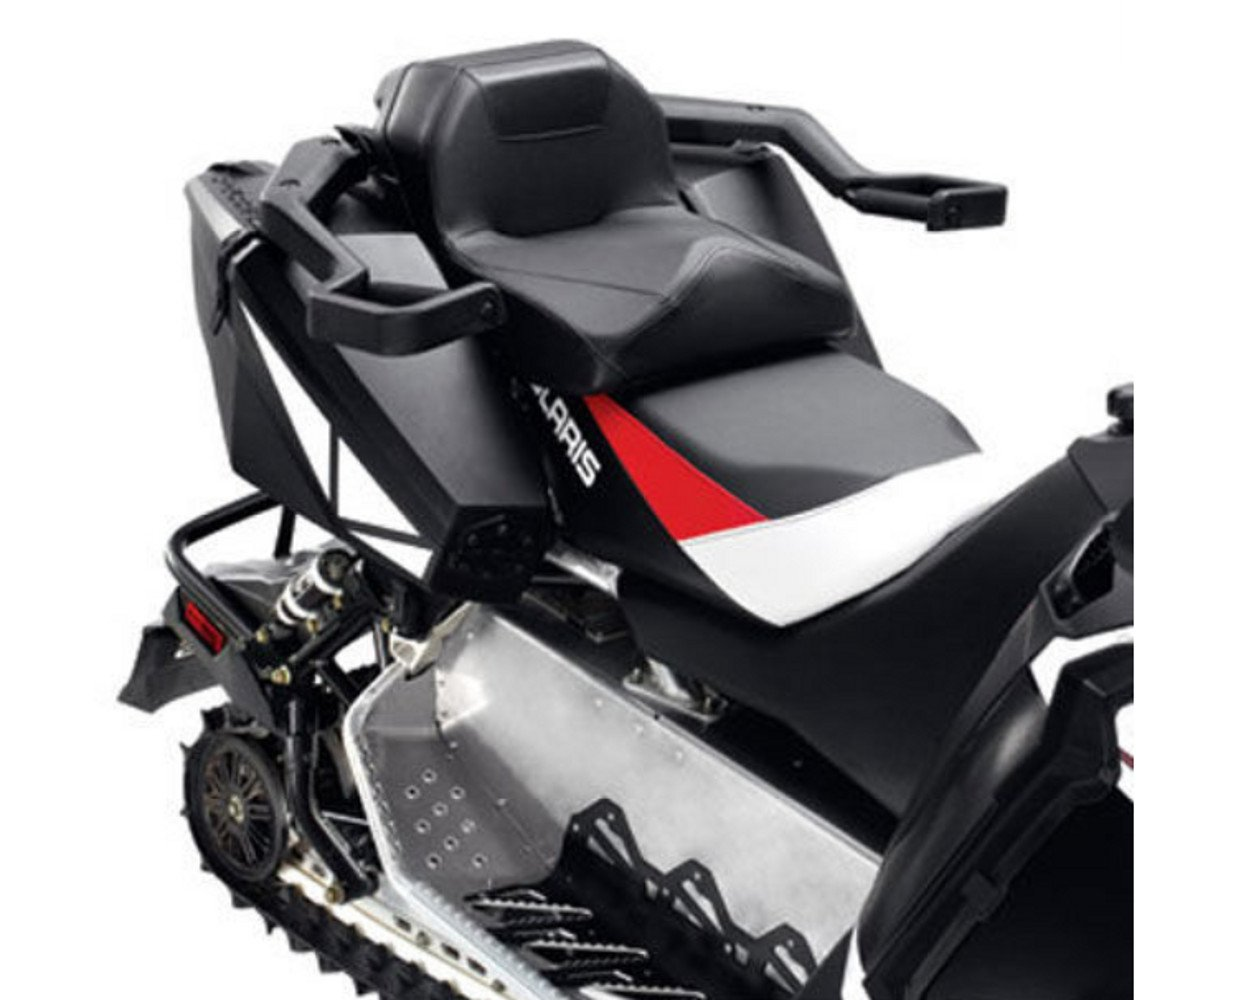 Genuine Pure Polaris Snowmobile Lock & Ride Convertible Passenger Seat for Switchback and 600/800 Adventure pt# 2879839